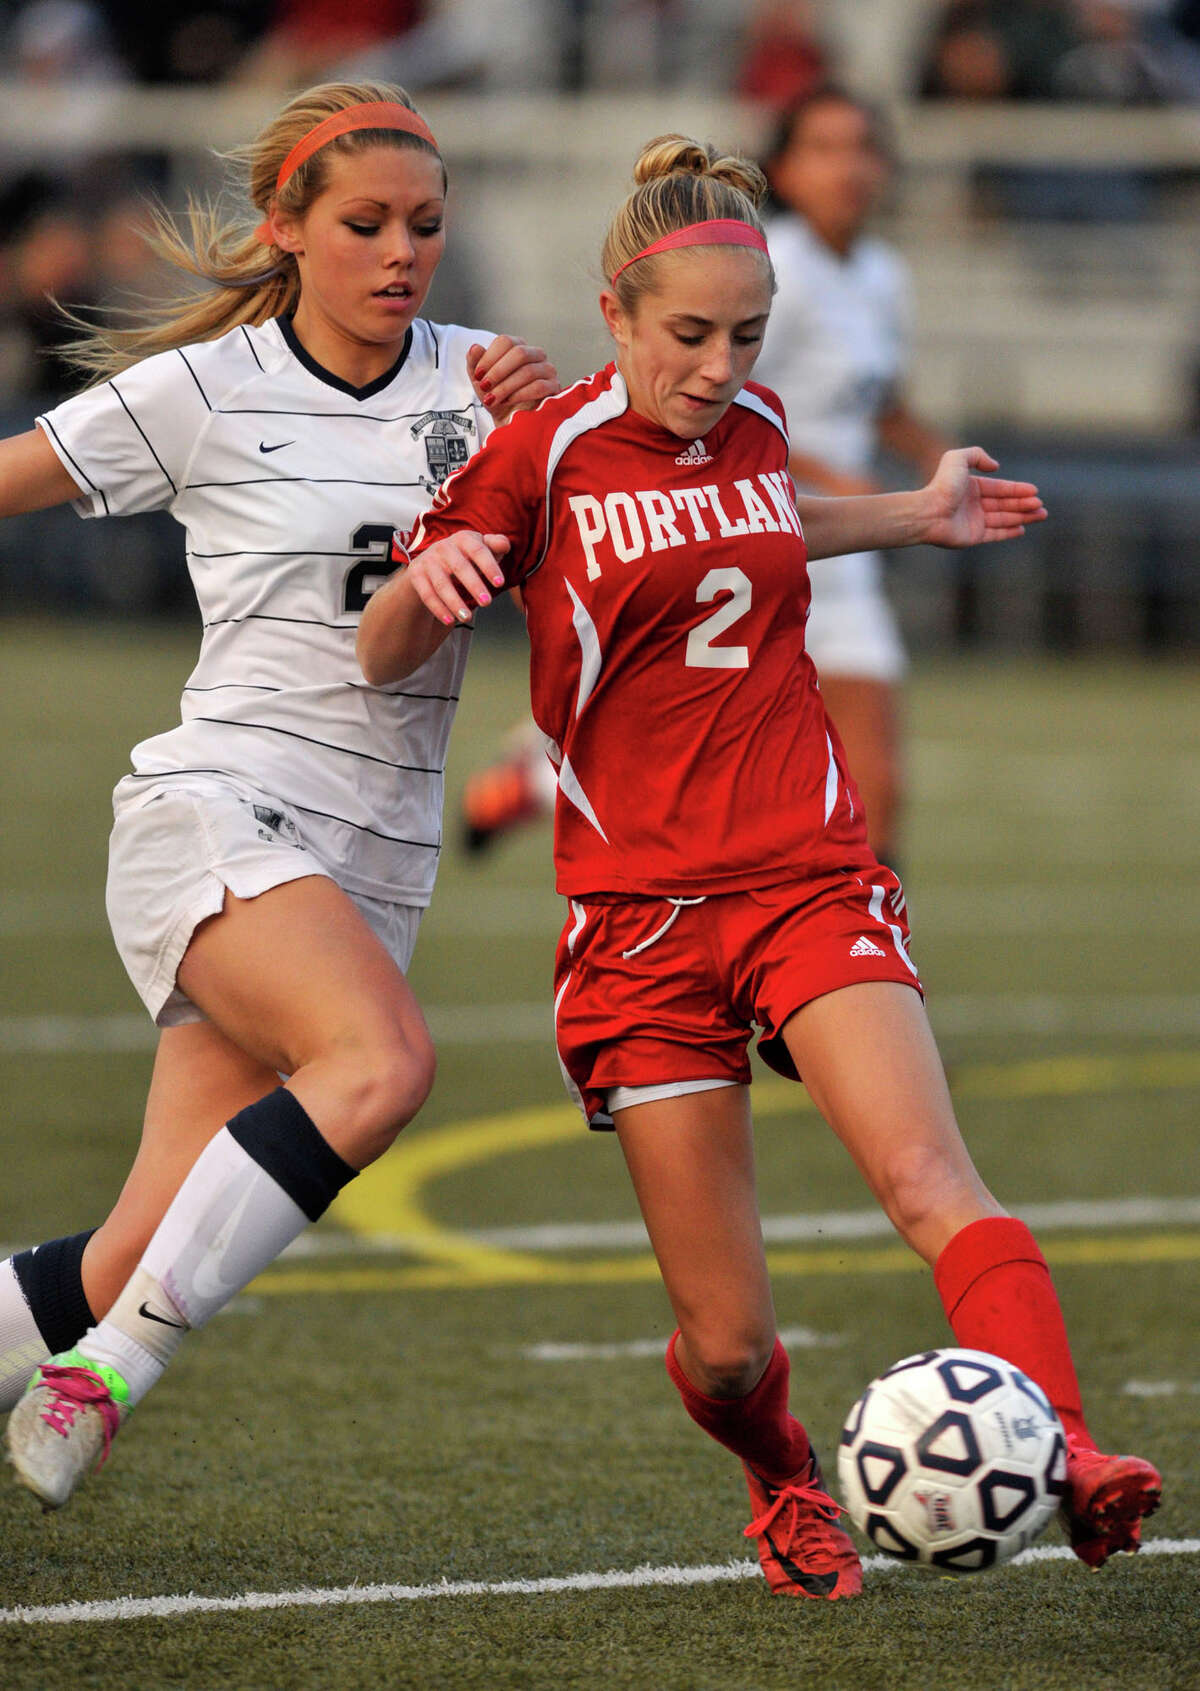 Immaculate's Lindsay Jossick challenges Portland's Emma Ruppert for the ball during their Class S state championship game at Municipal Stadium in Waterbury on Friday, Nov. 23, 2012. Immaculate won, 5-0.